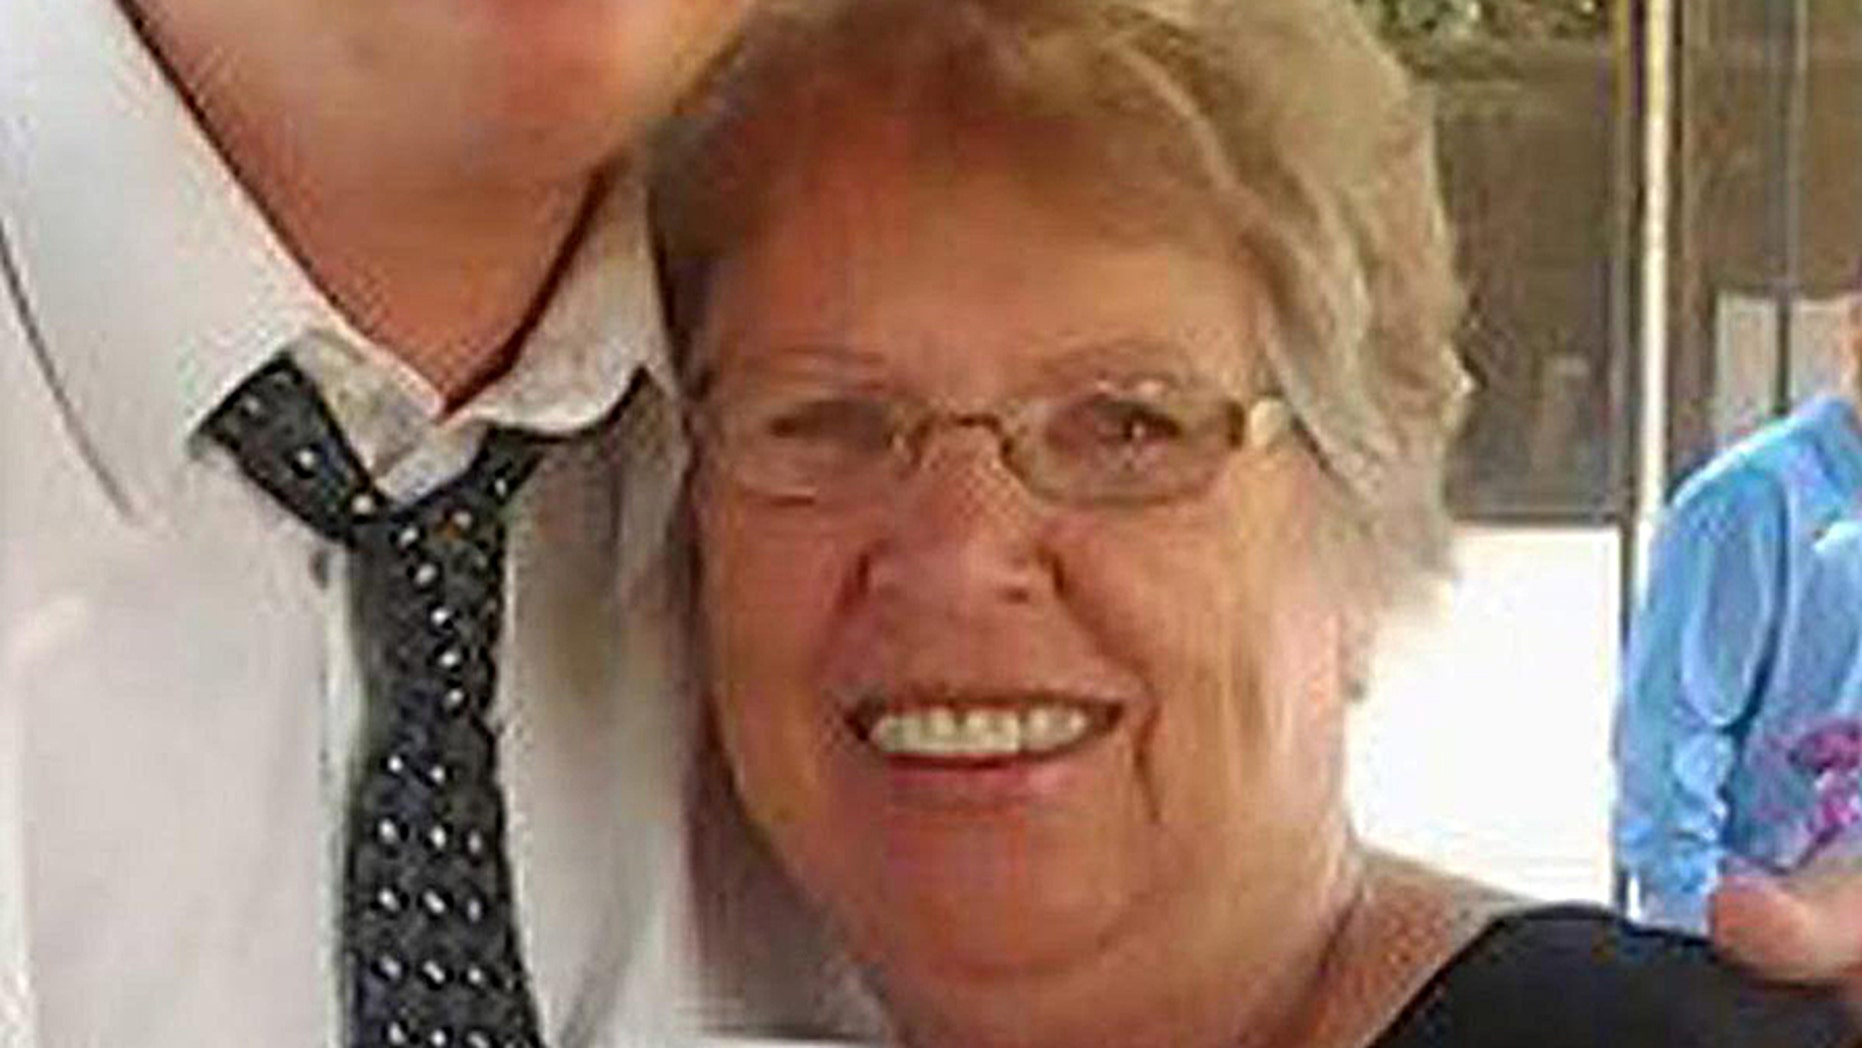 The gunman in Sunday's mass shooting at a Texas church reportedly killed his grandmother-in-law, in addition to at least 25 others.